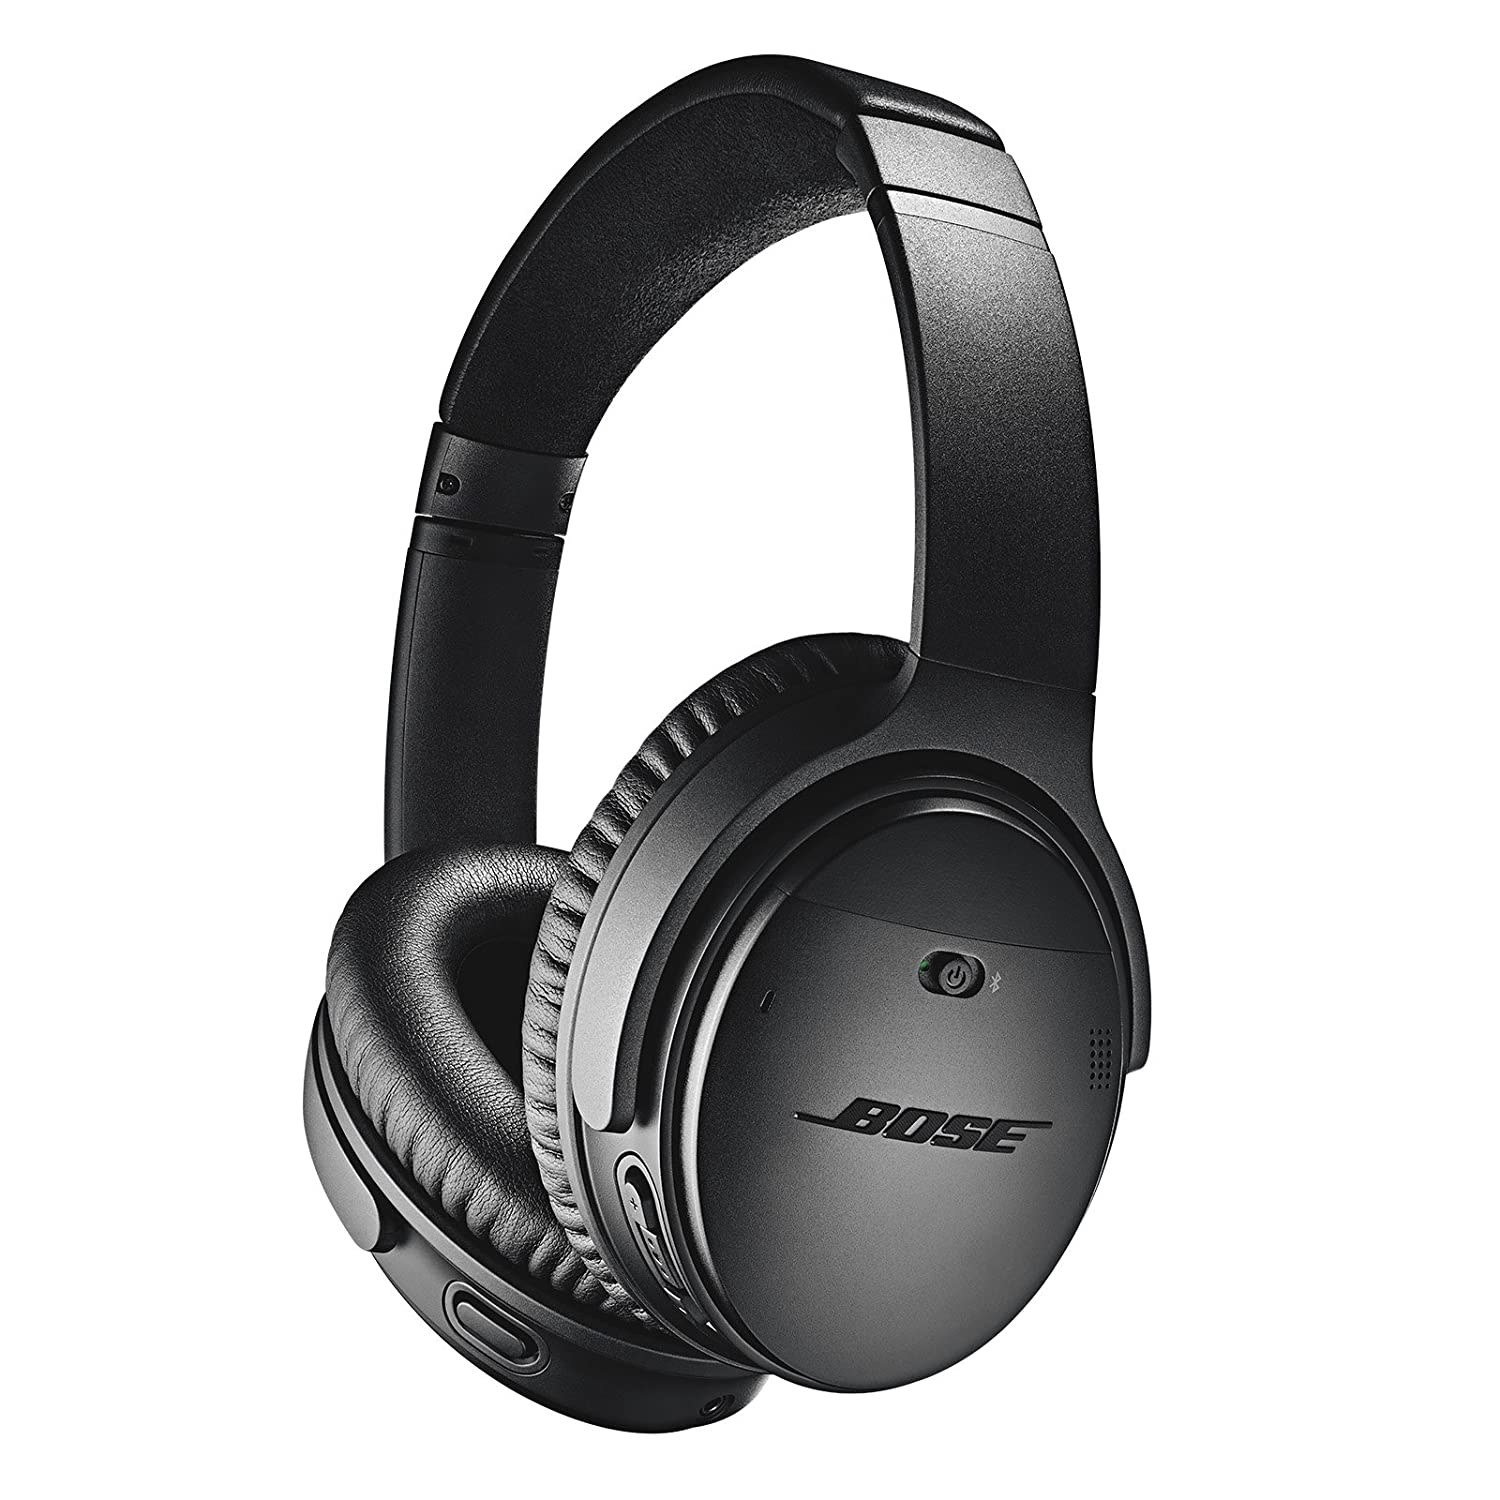 A pair of black Bose headphones